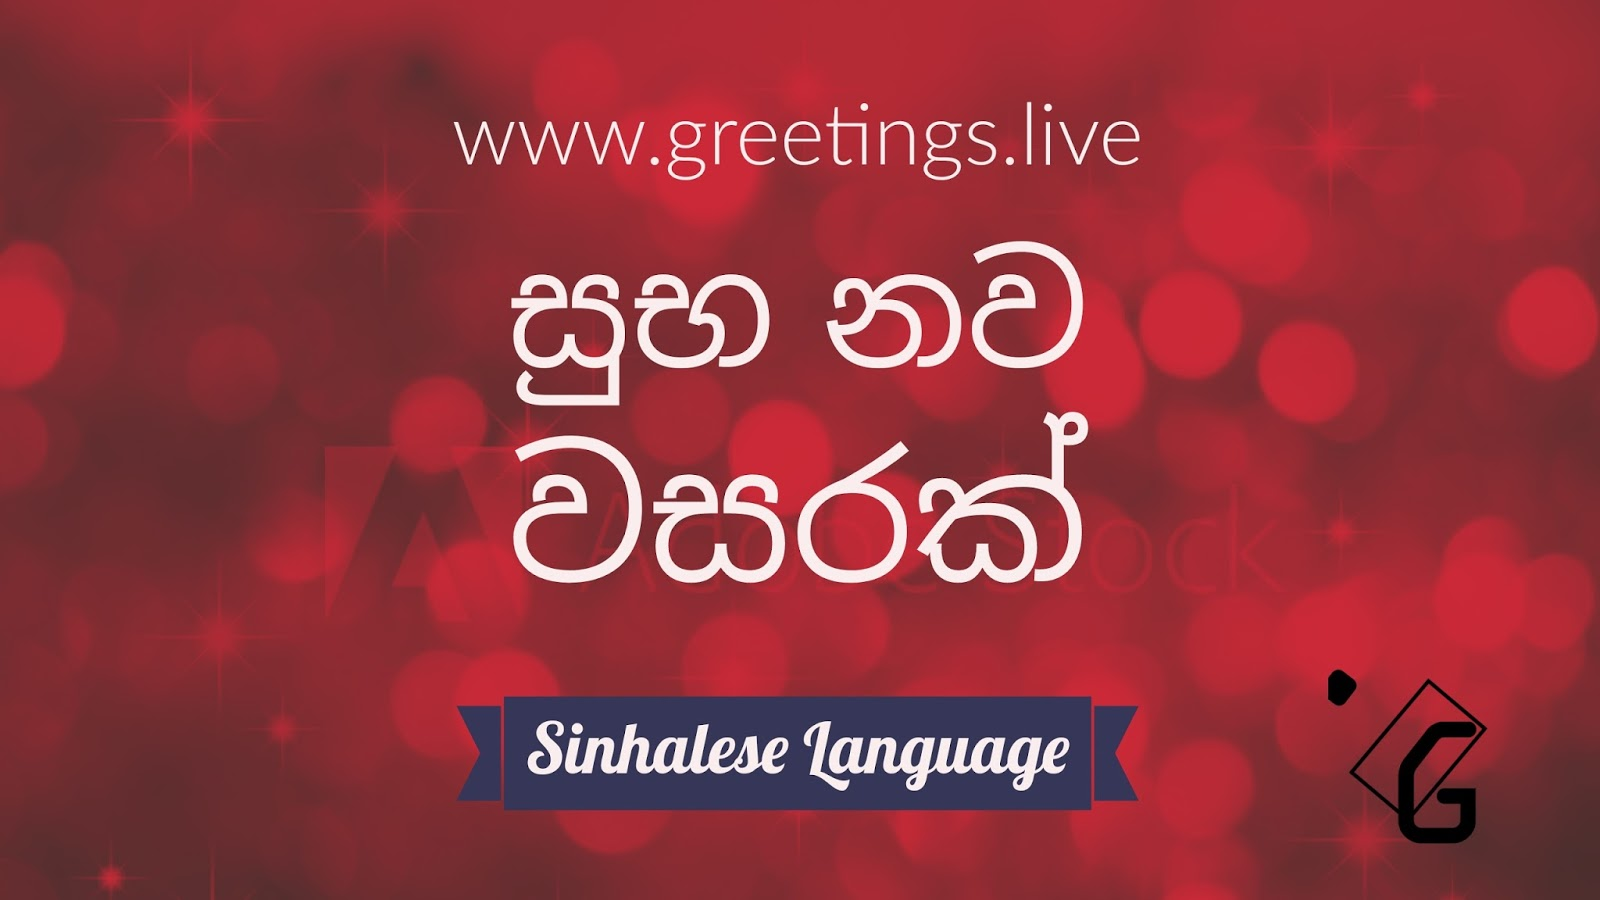 Red Sparkling Background Sinhalese Greetings